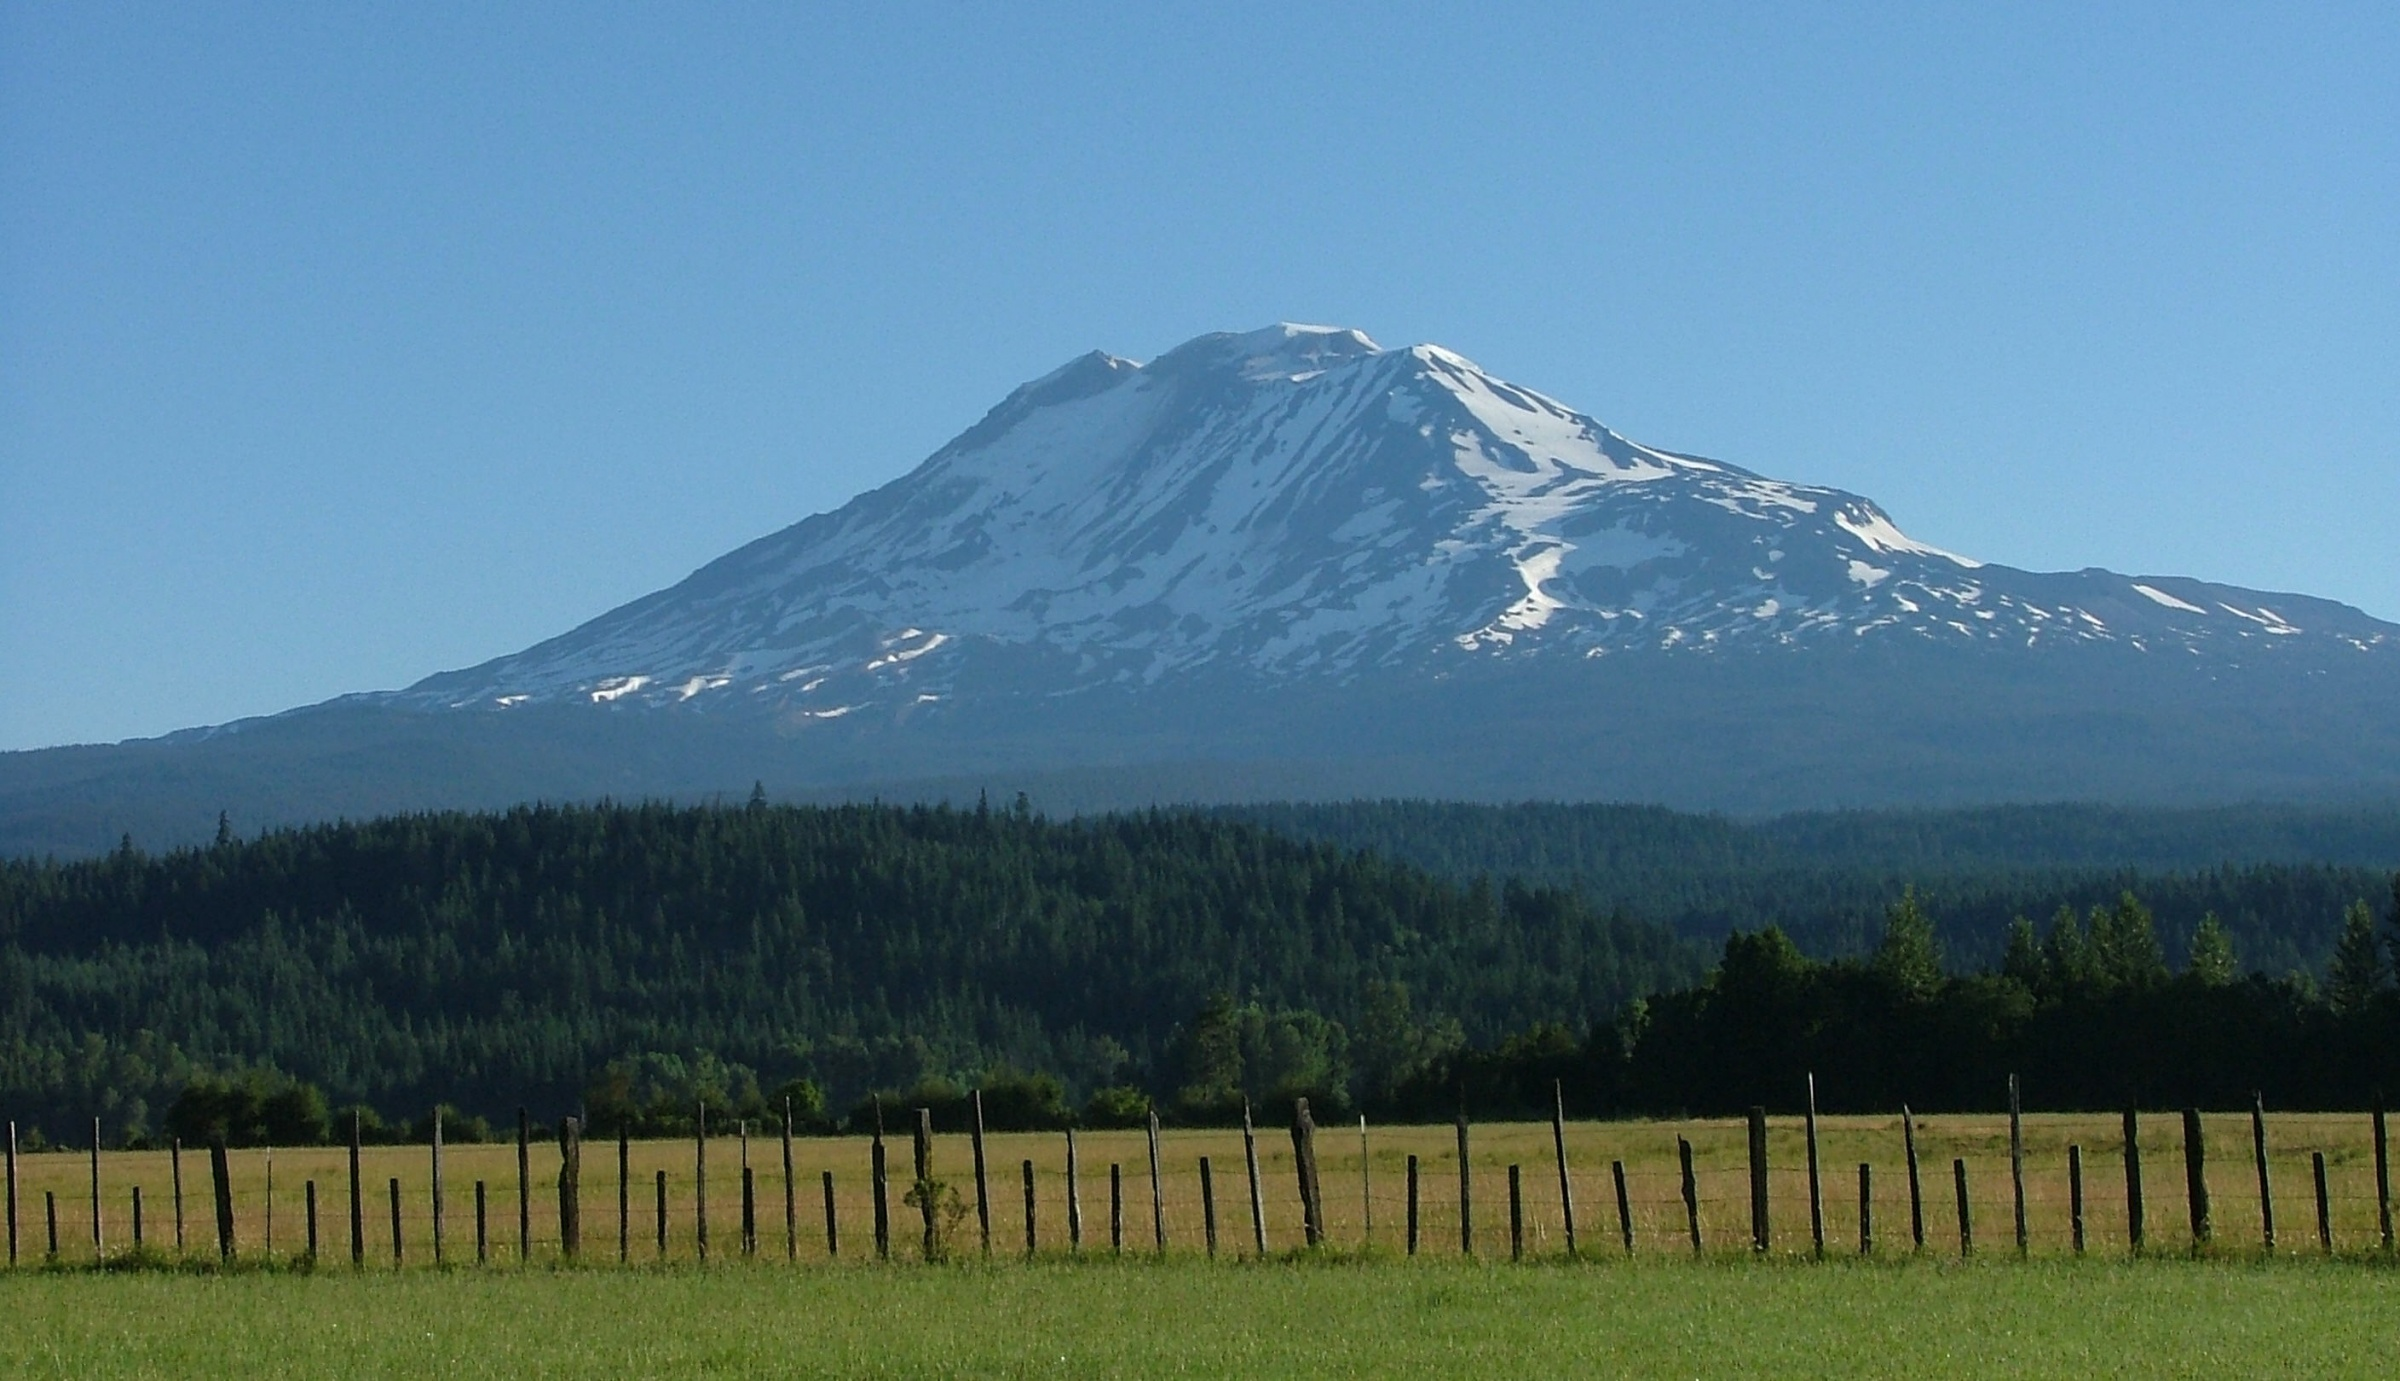 Click image for larger version  Name:Mt adams.jpg Views:146 Size:736.6 KB ID:8326